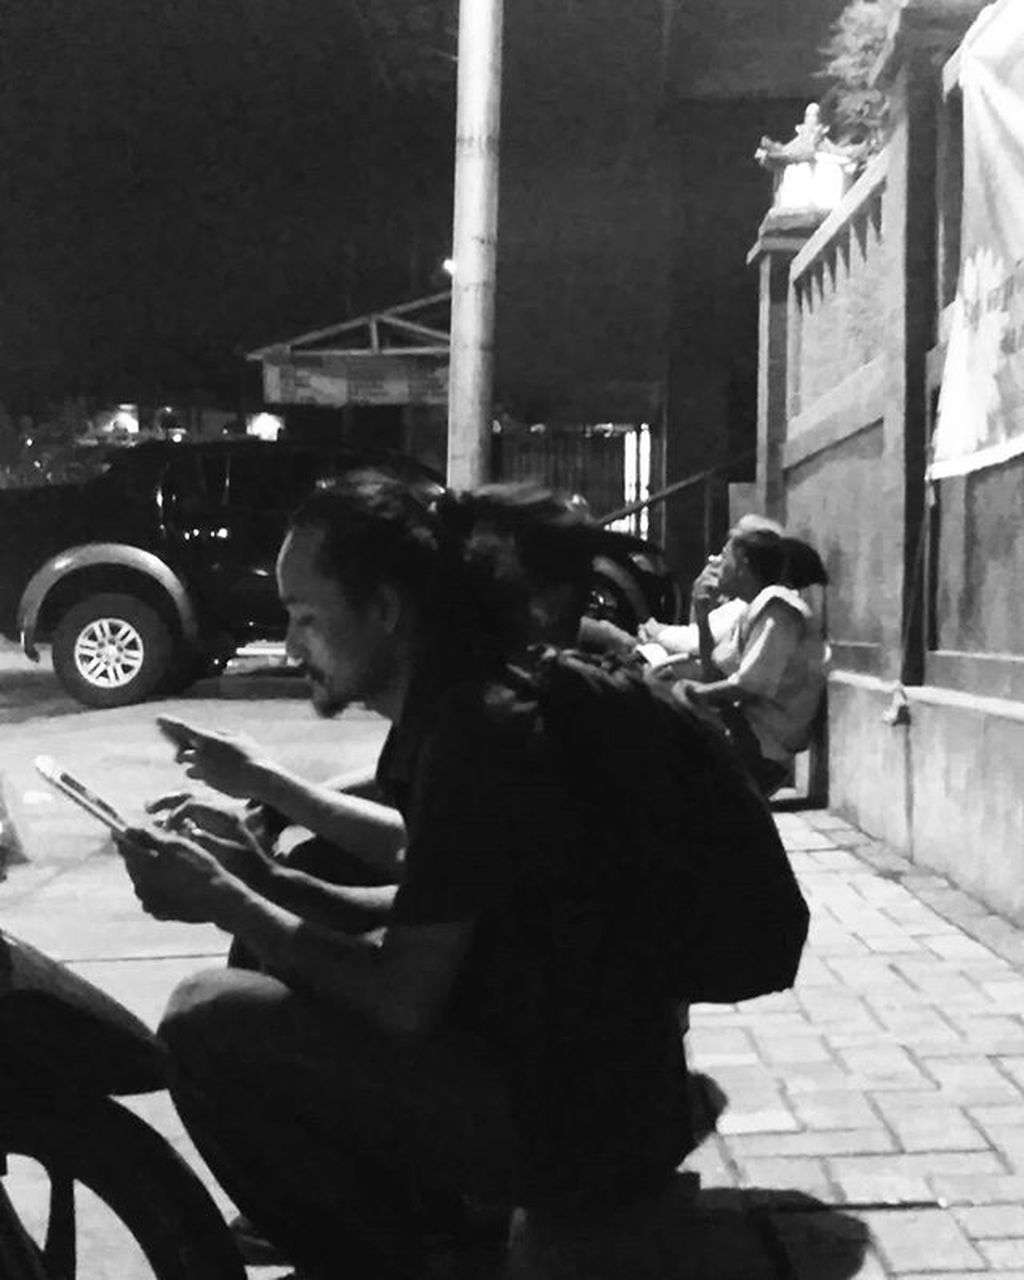 street, communication, sitting, holding, mobile phone, wireless technology, outdoors, real people, one person, bad habit, night, city, technology, one man only, adult, people, only men, adults only, young adult